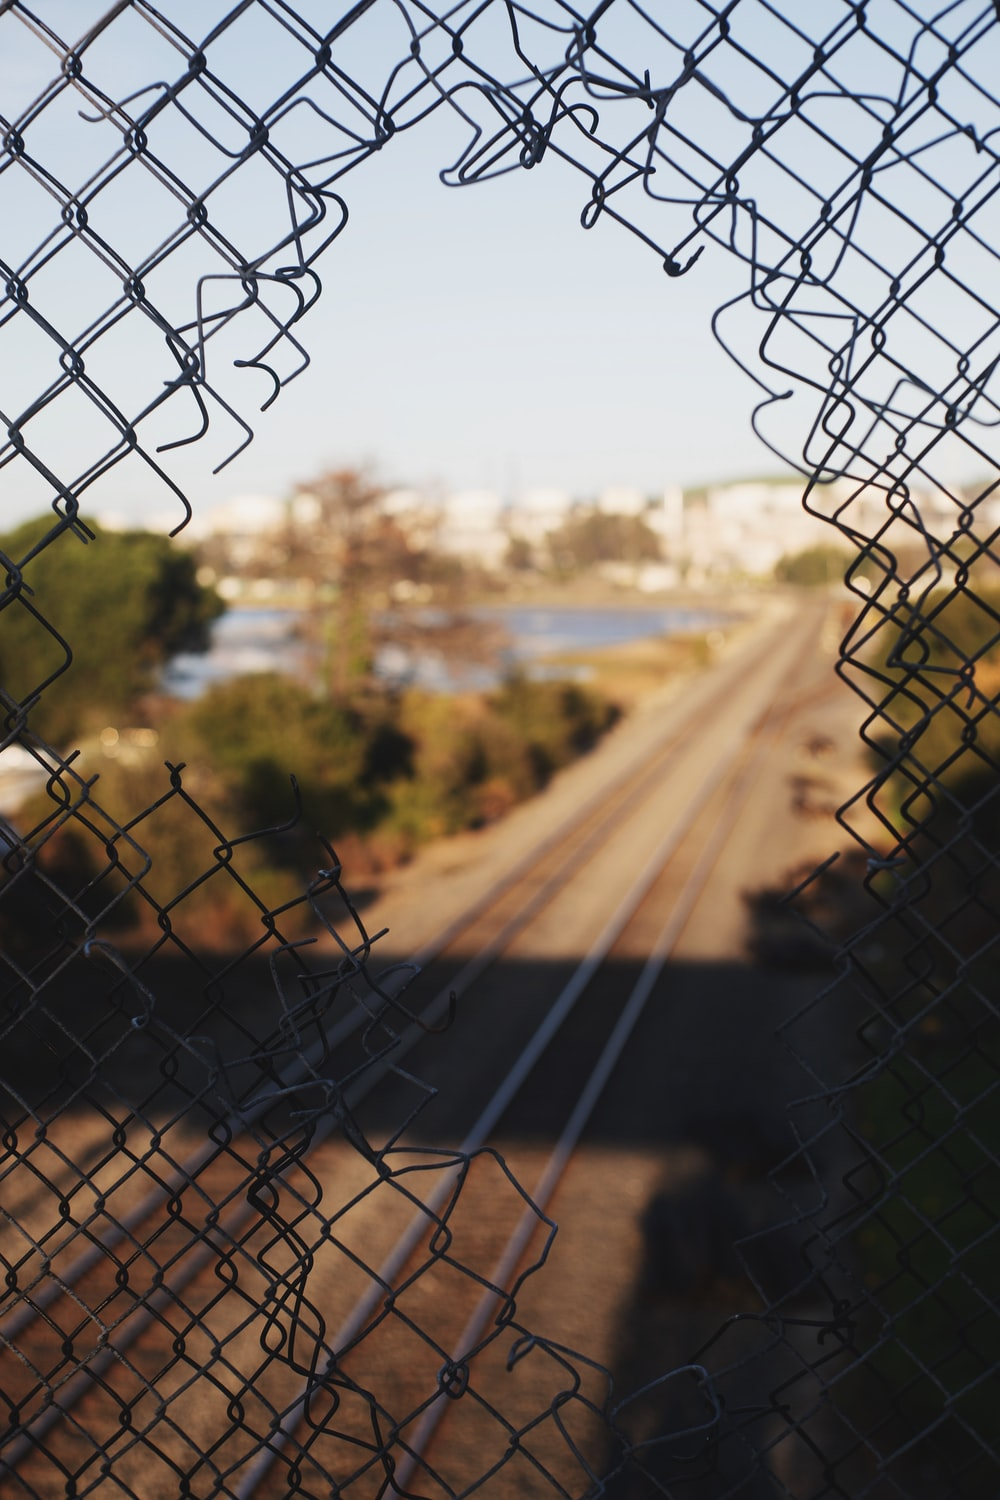 brown field with gray chain link fence during daytime